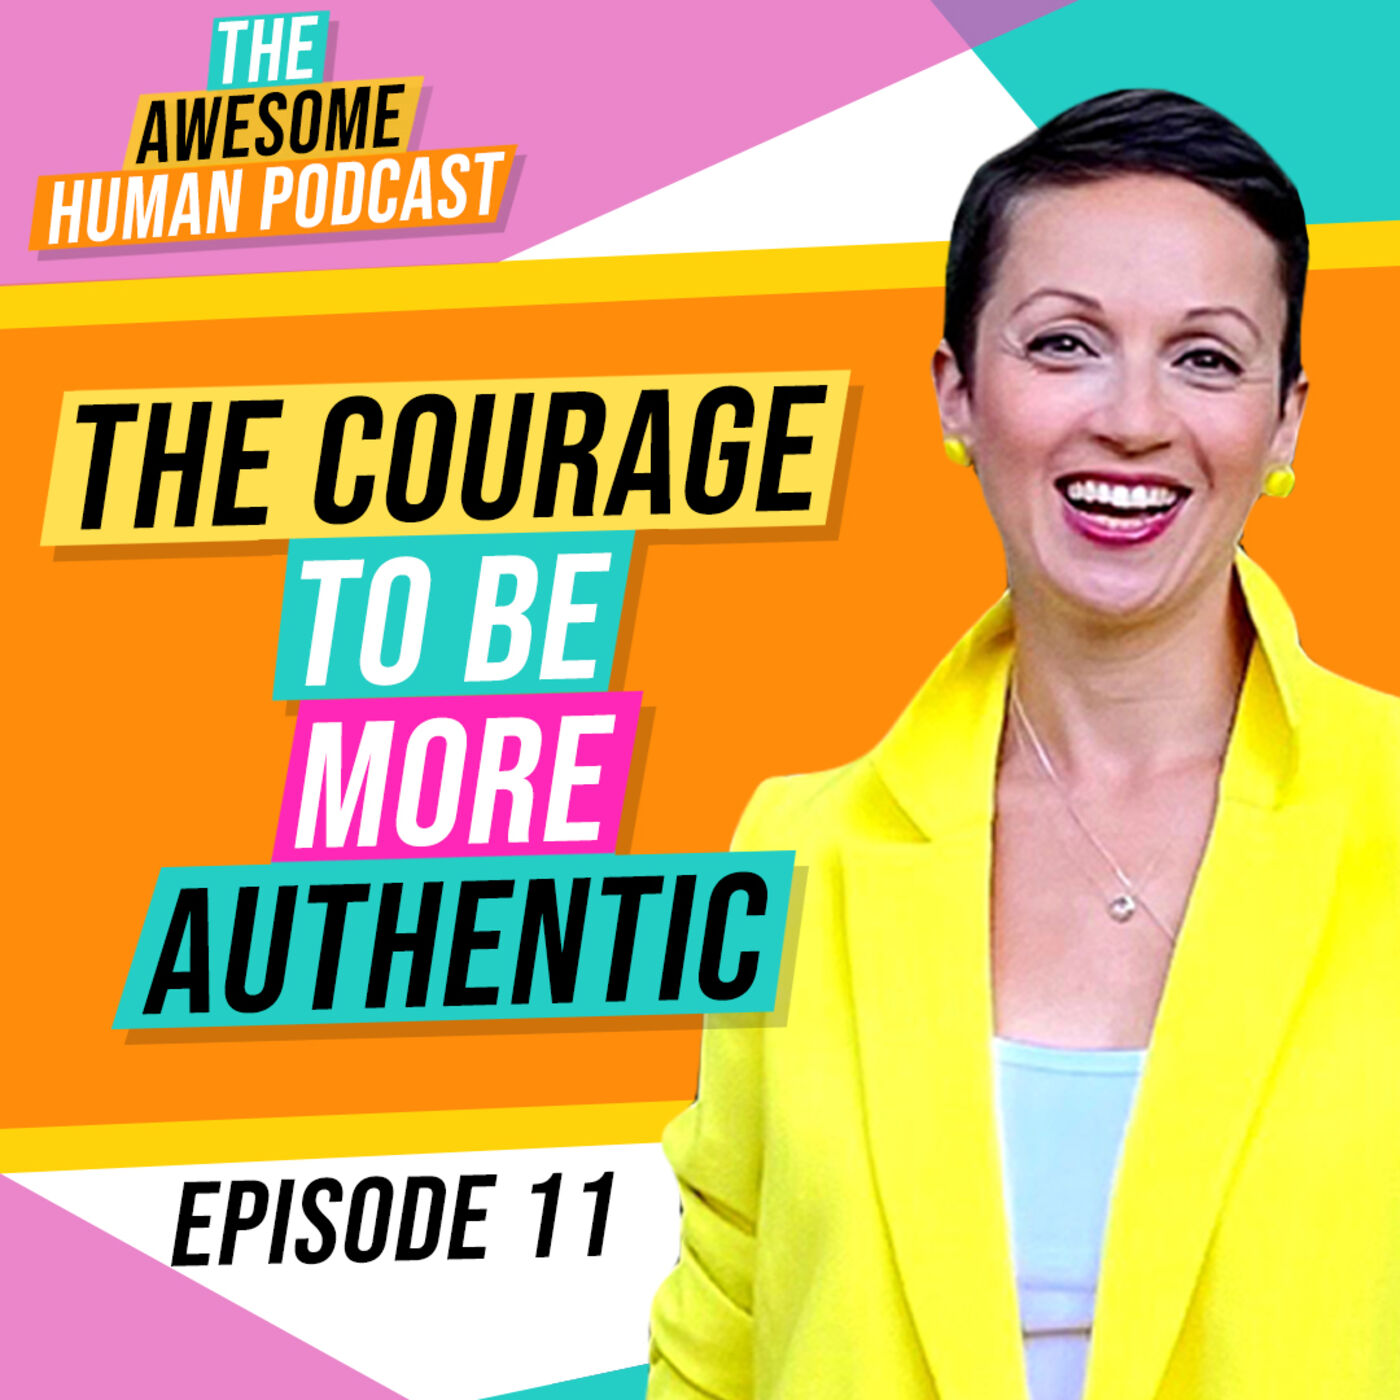 The Courage To Be More Authentic